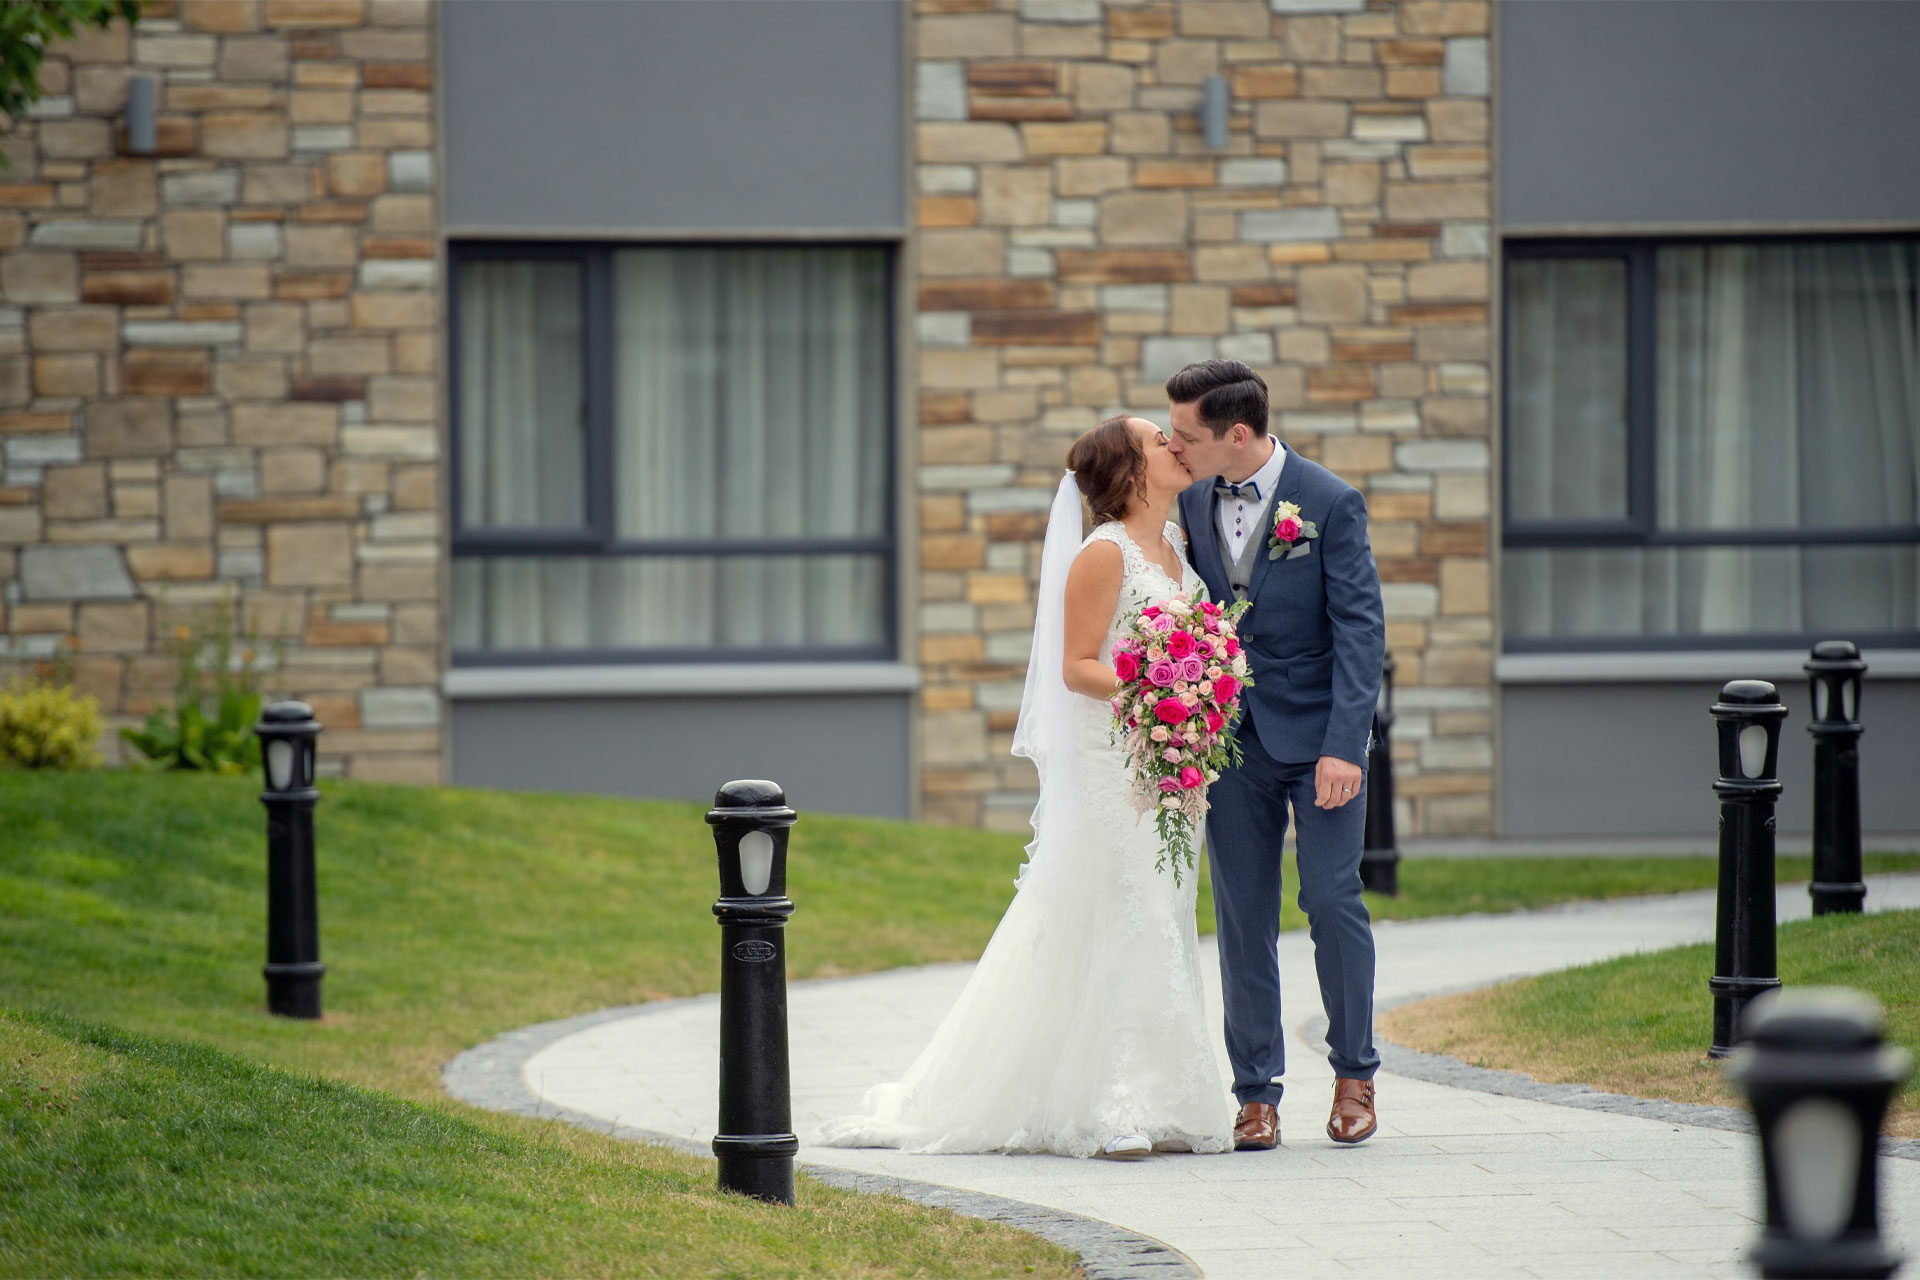 Photo of Tamryn and Paul on their wedding day, captured in the courtyard area of Hotel Kilmore, Co. Cavan, Ireland.